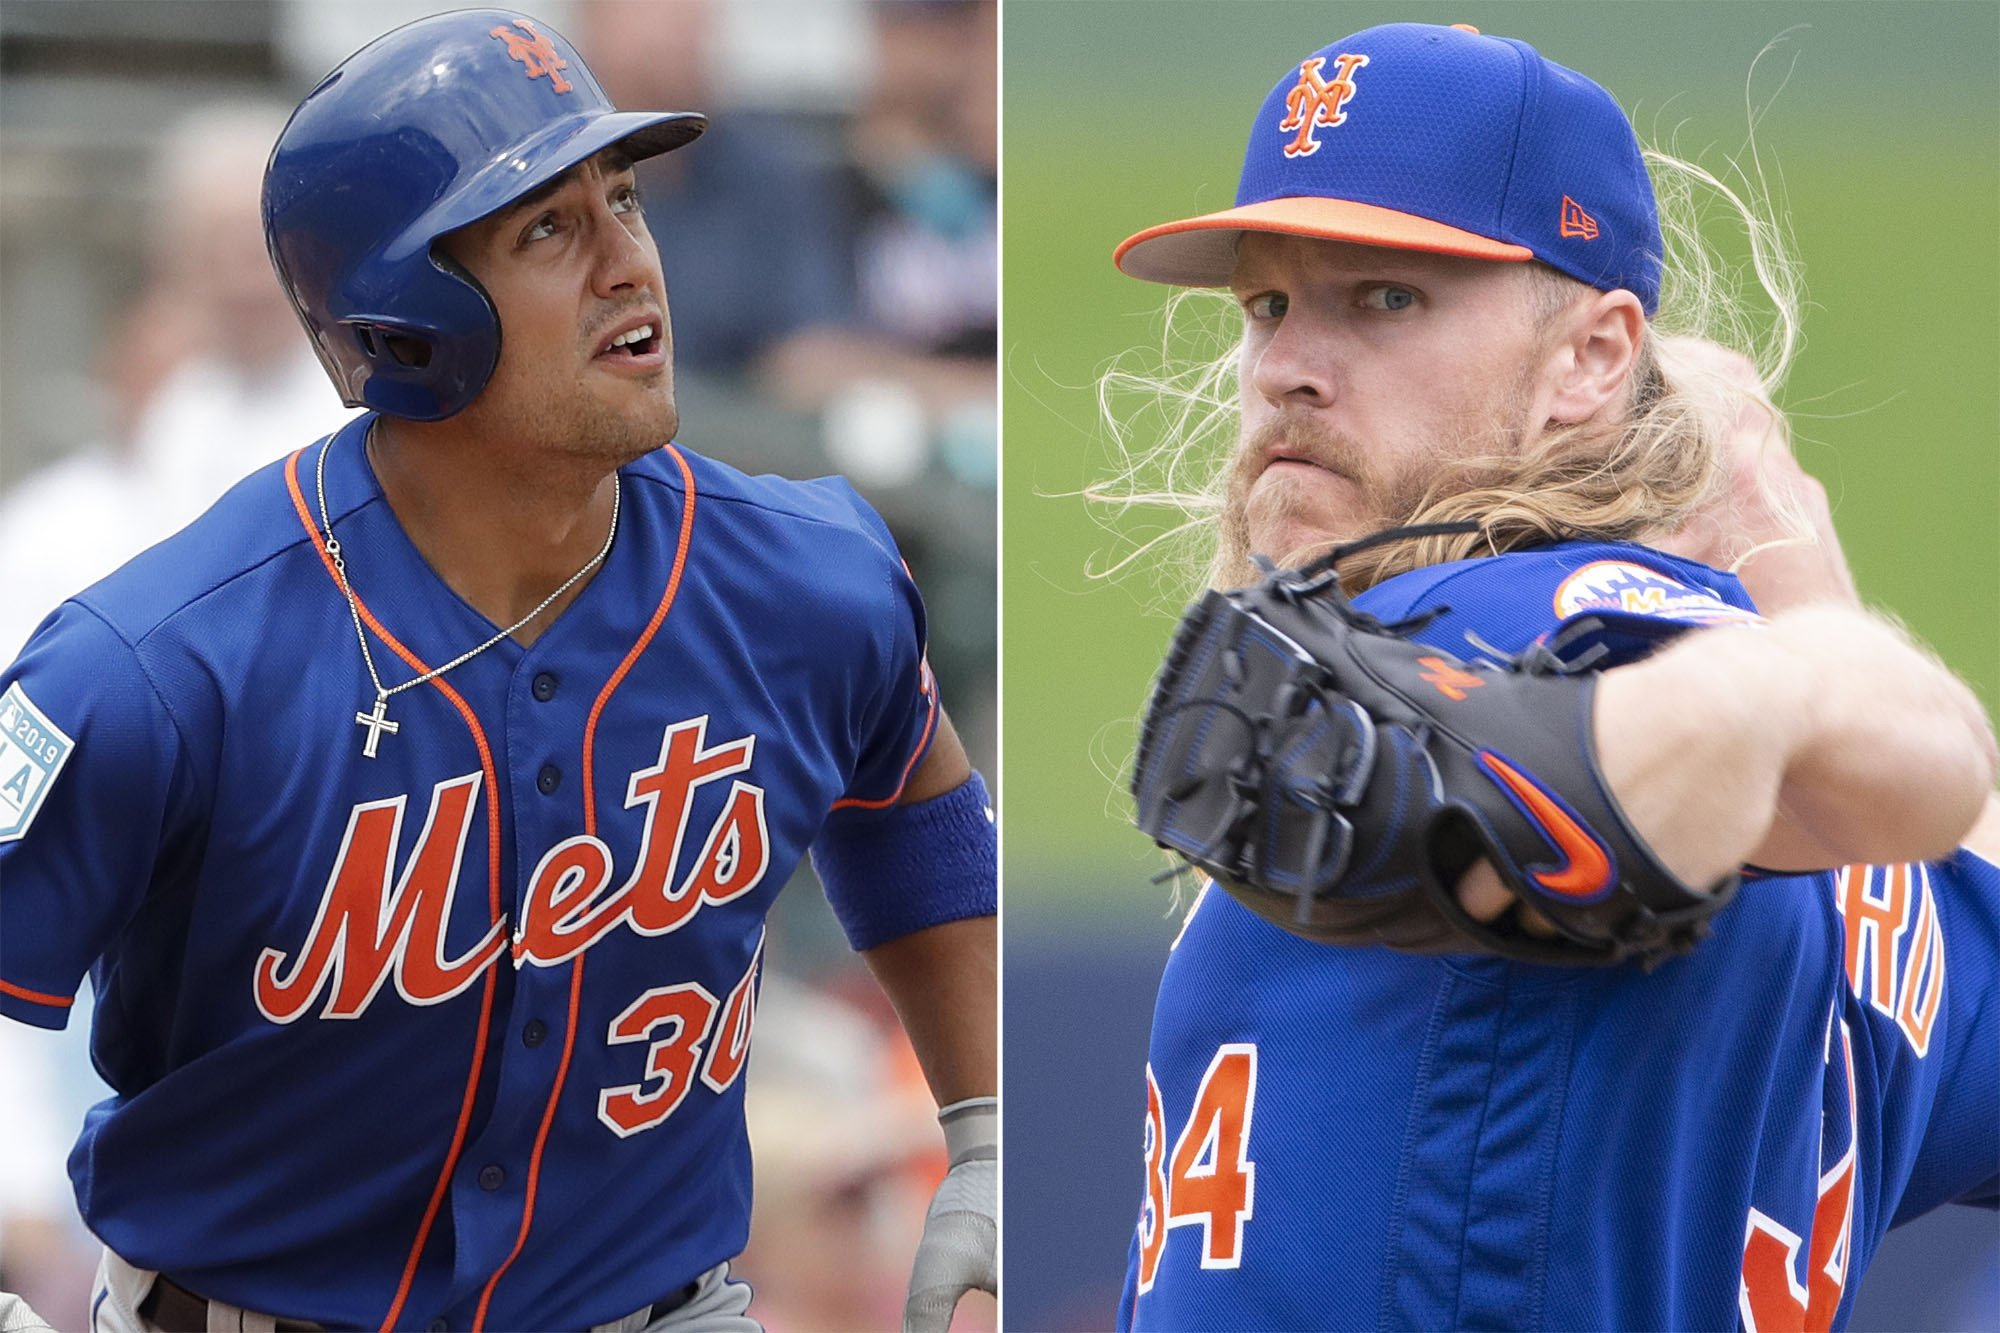 Noah Syndergaard isn't only Mets player questioning Syracuse trip